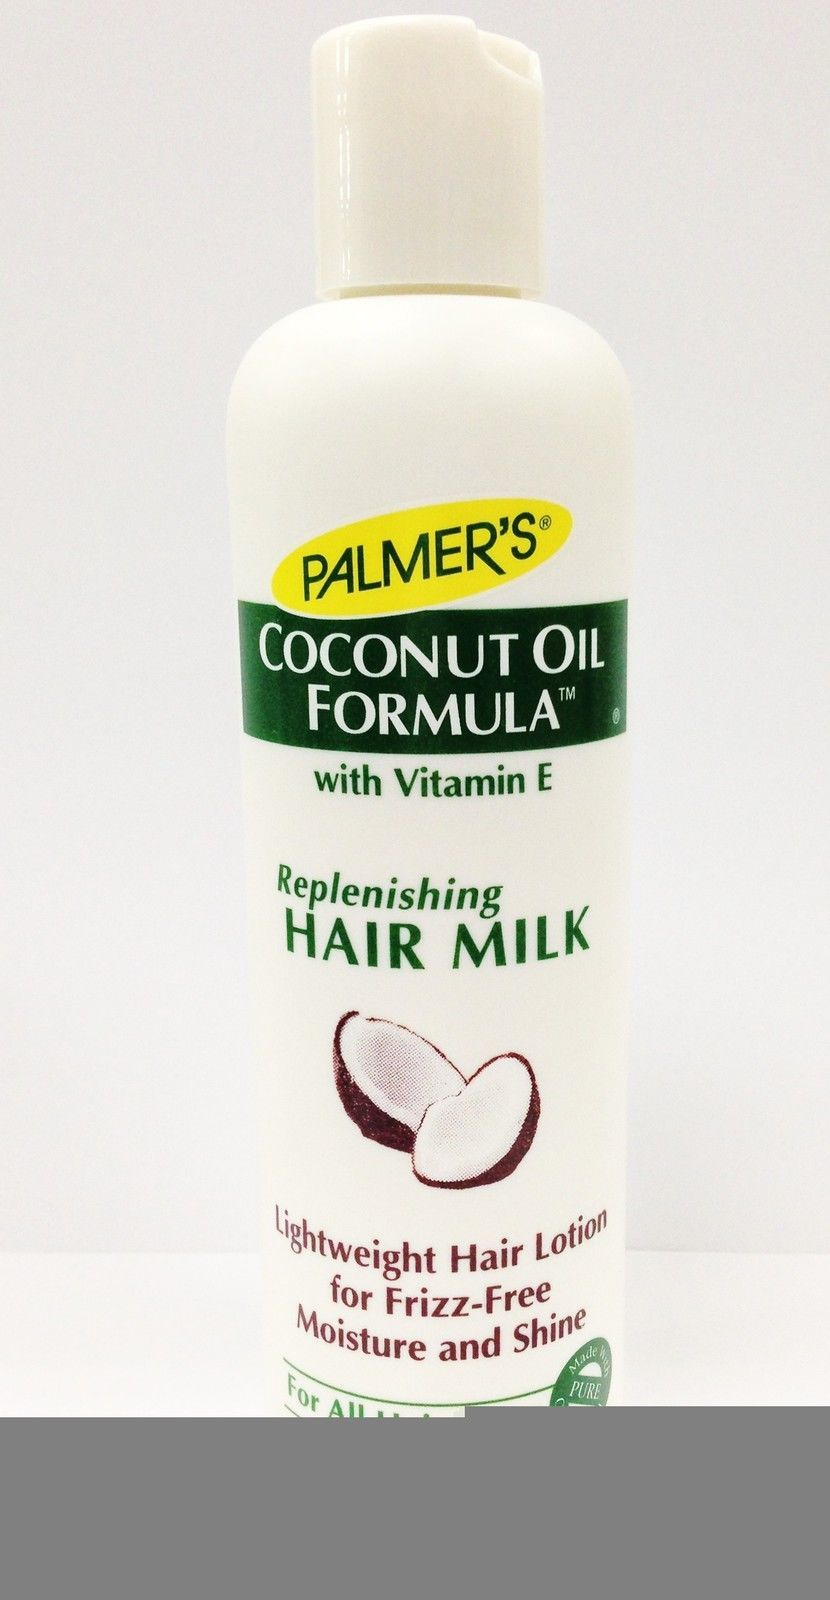 PALMER'S COCONUT OIL FORMULA REPLENISHING HAIR MILK LIGHTWEIGHT HAIR LOTION 8.5o